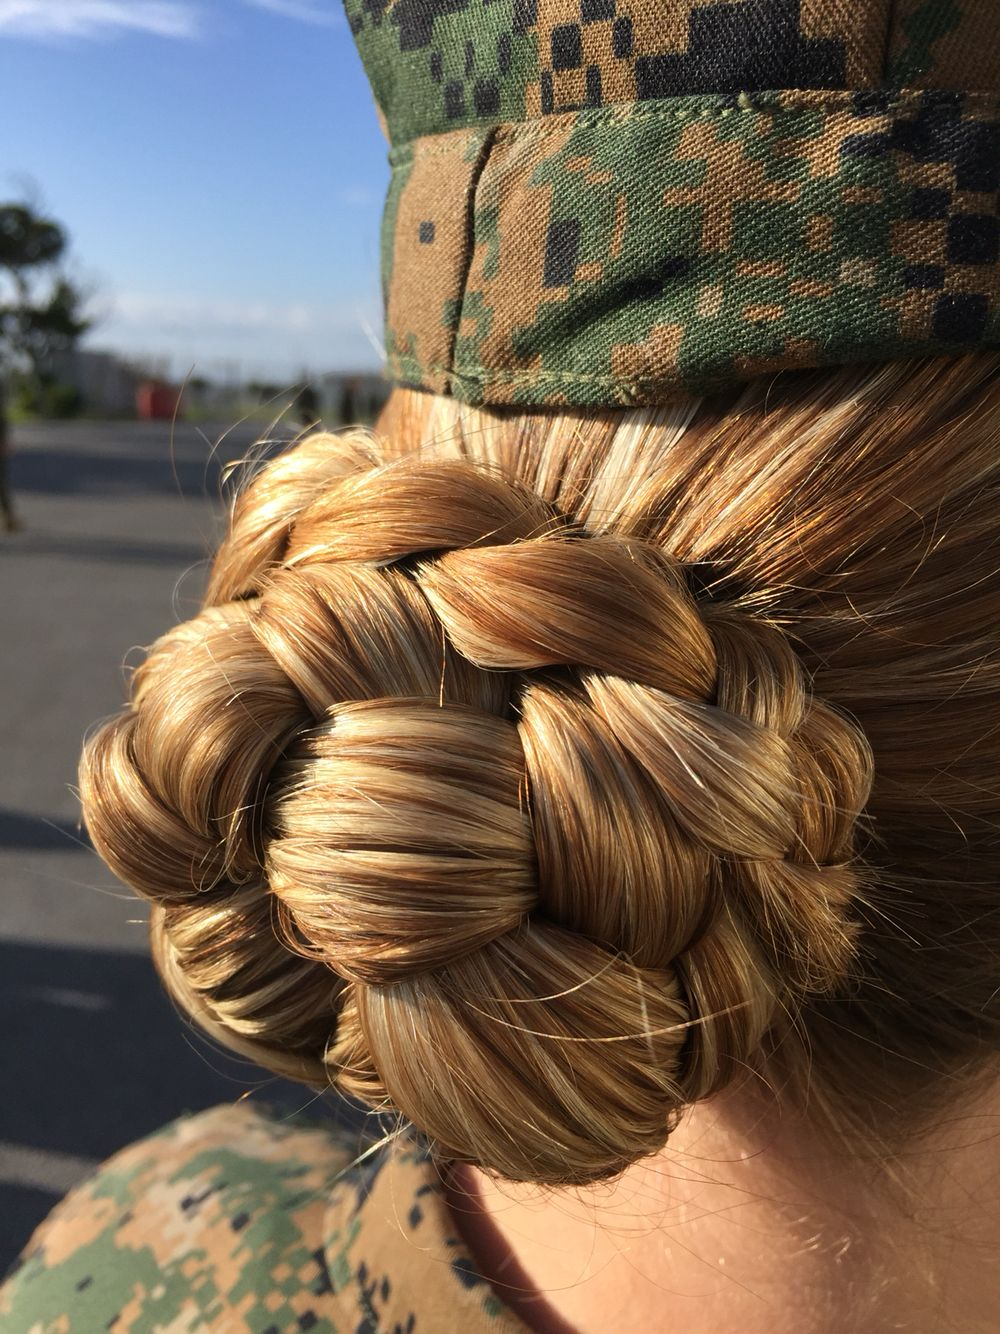 marine corps sock bun how-to guide. learn the technique behind